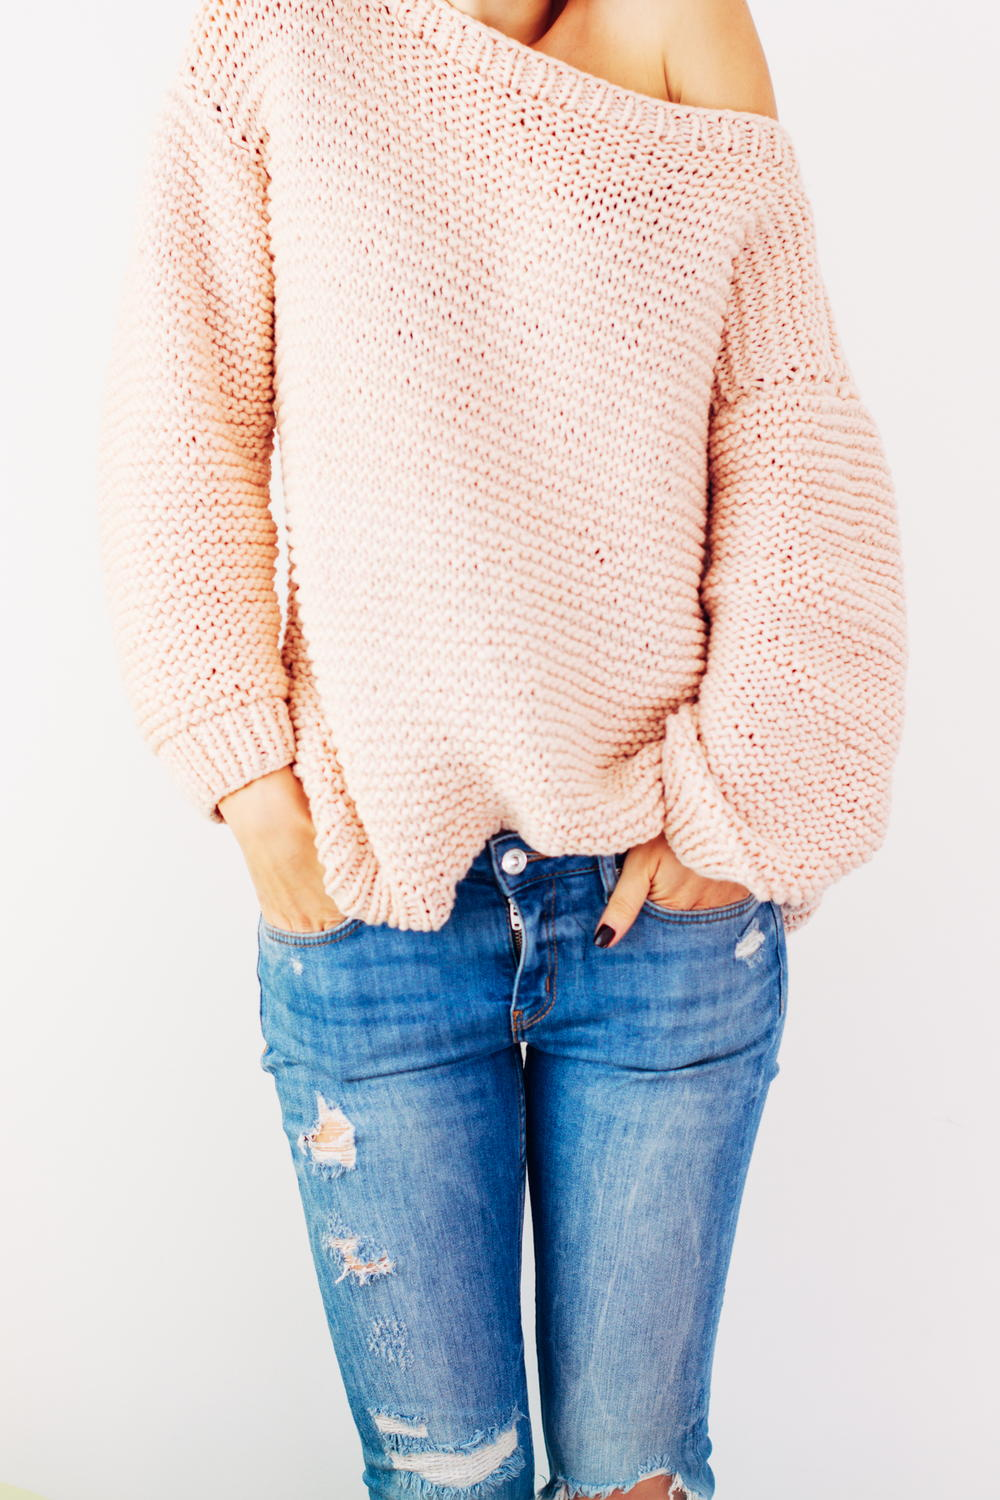 Knit A Sweater Easy : Peachy keen oversize knitted sweater allfreeknitting